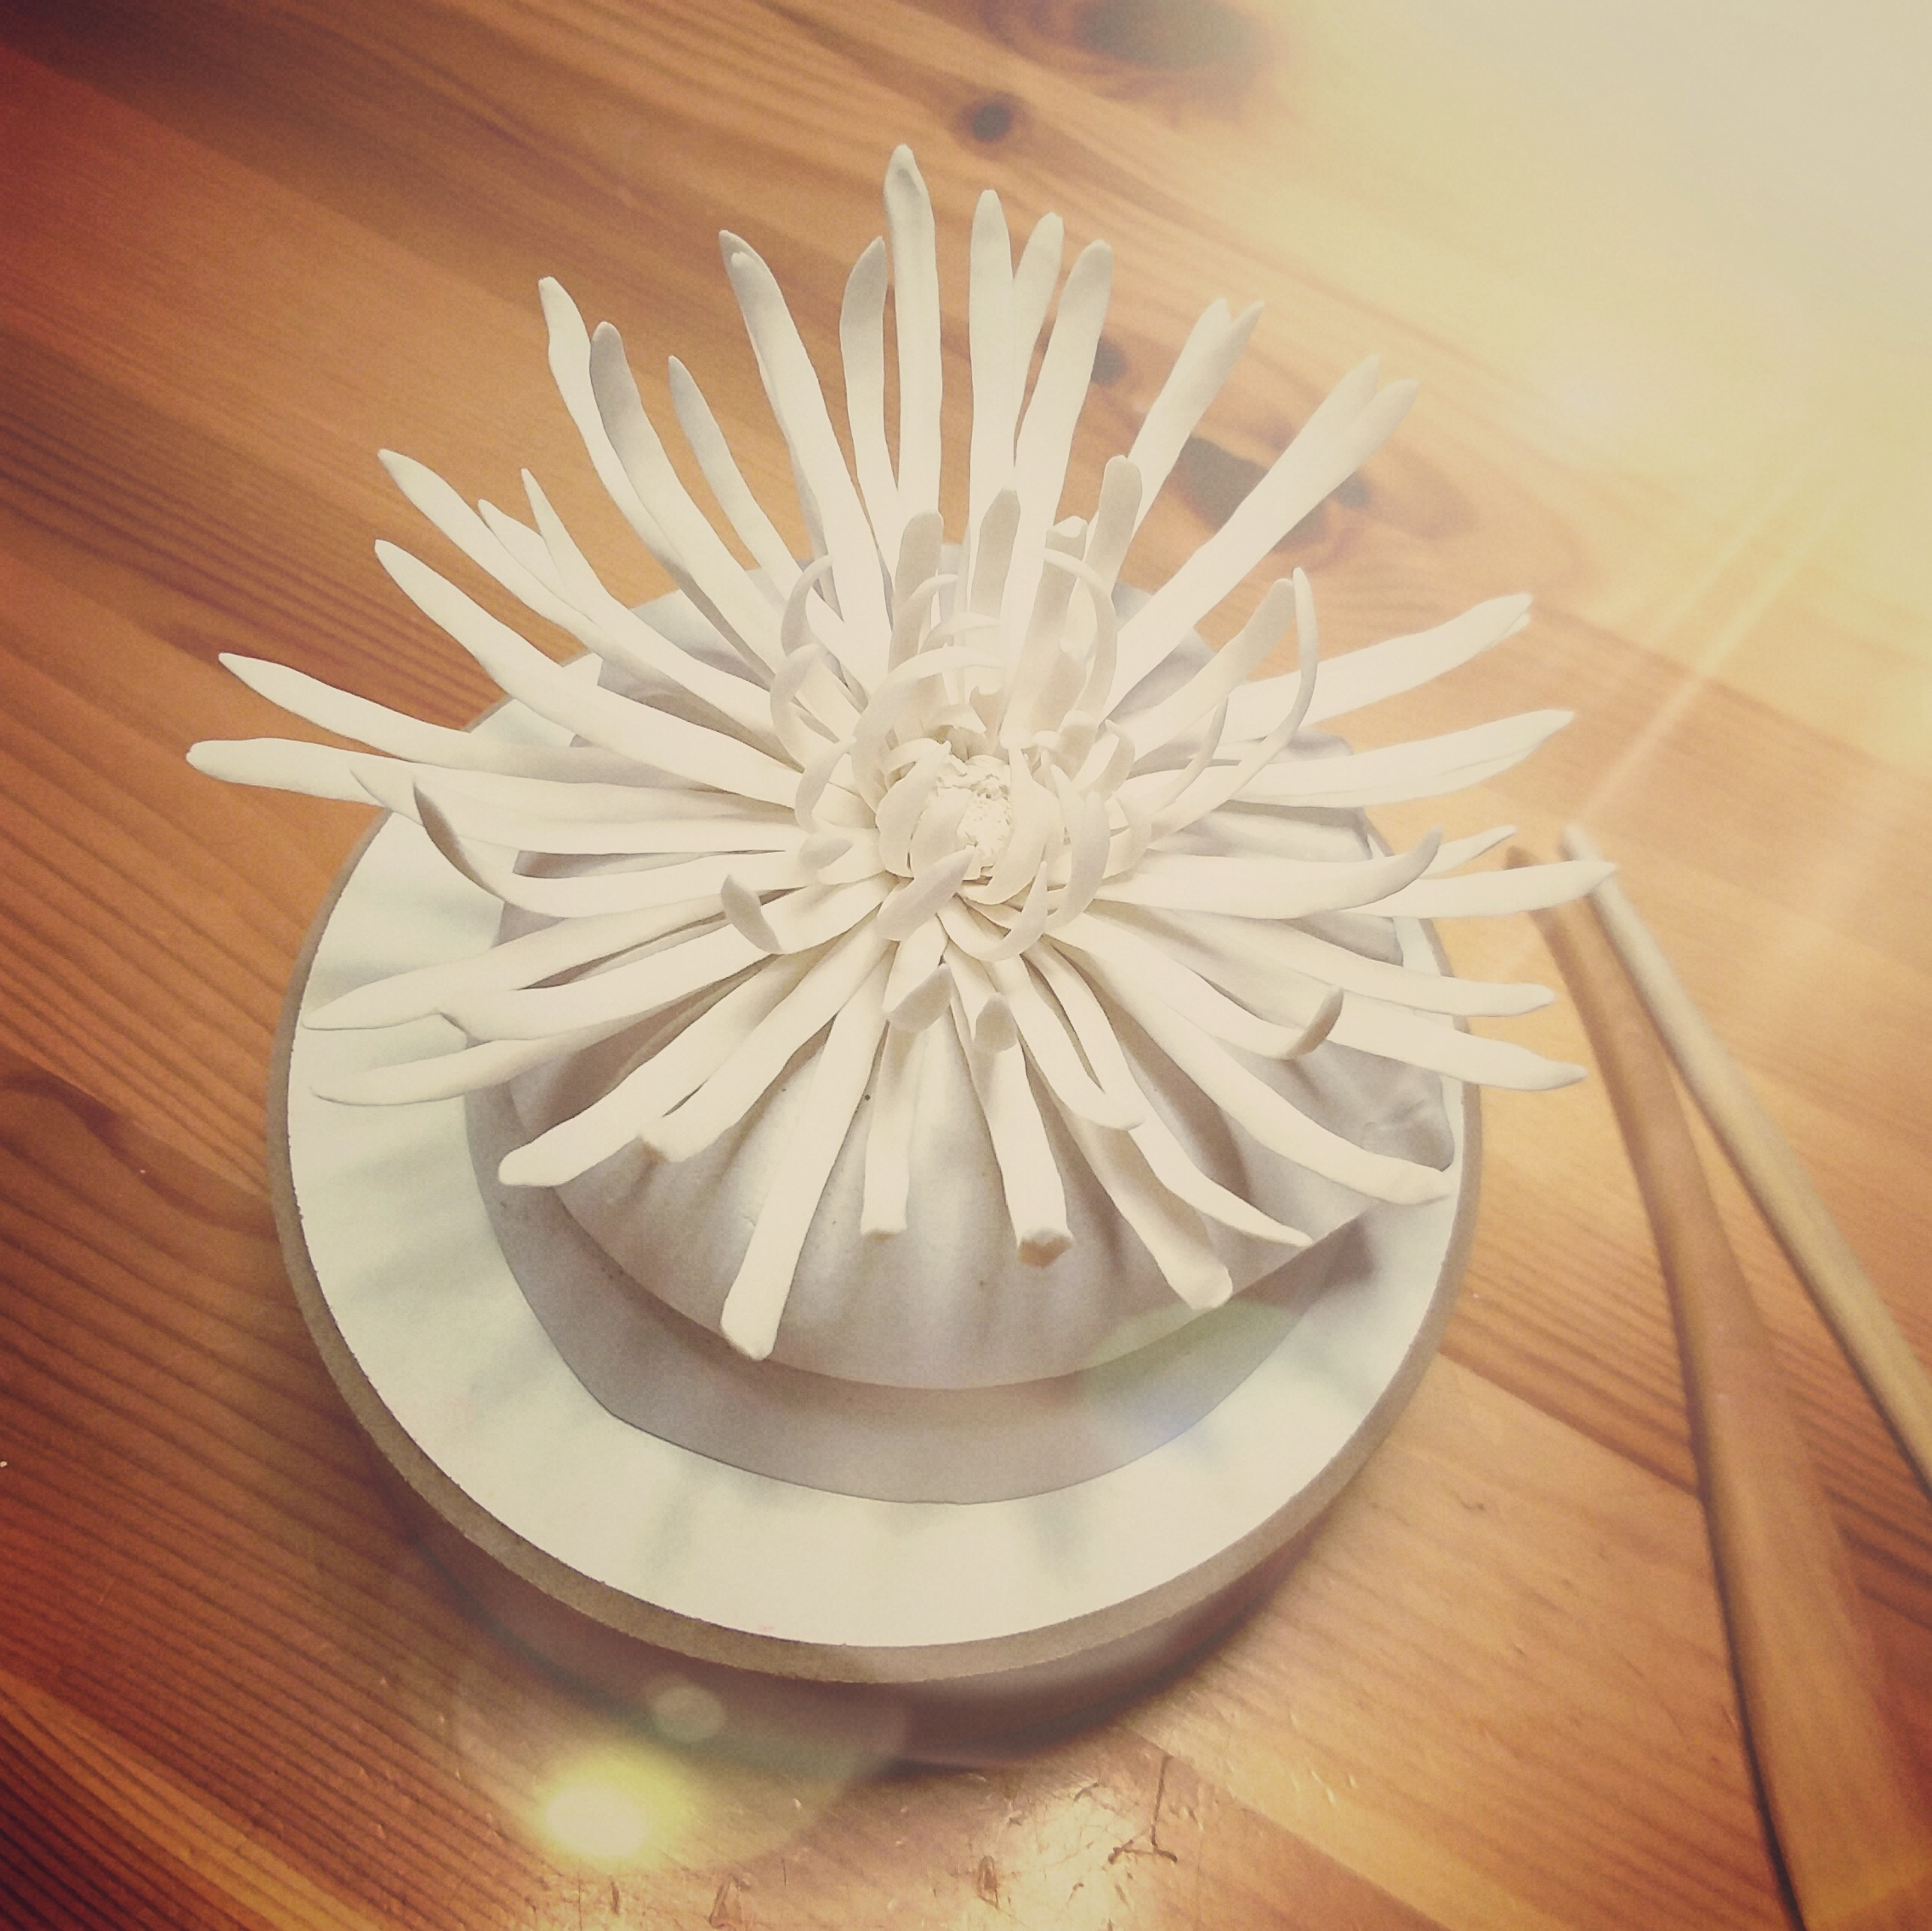 Porcelain chrysanthemum making